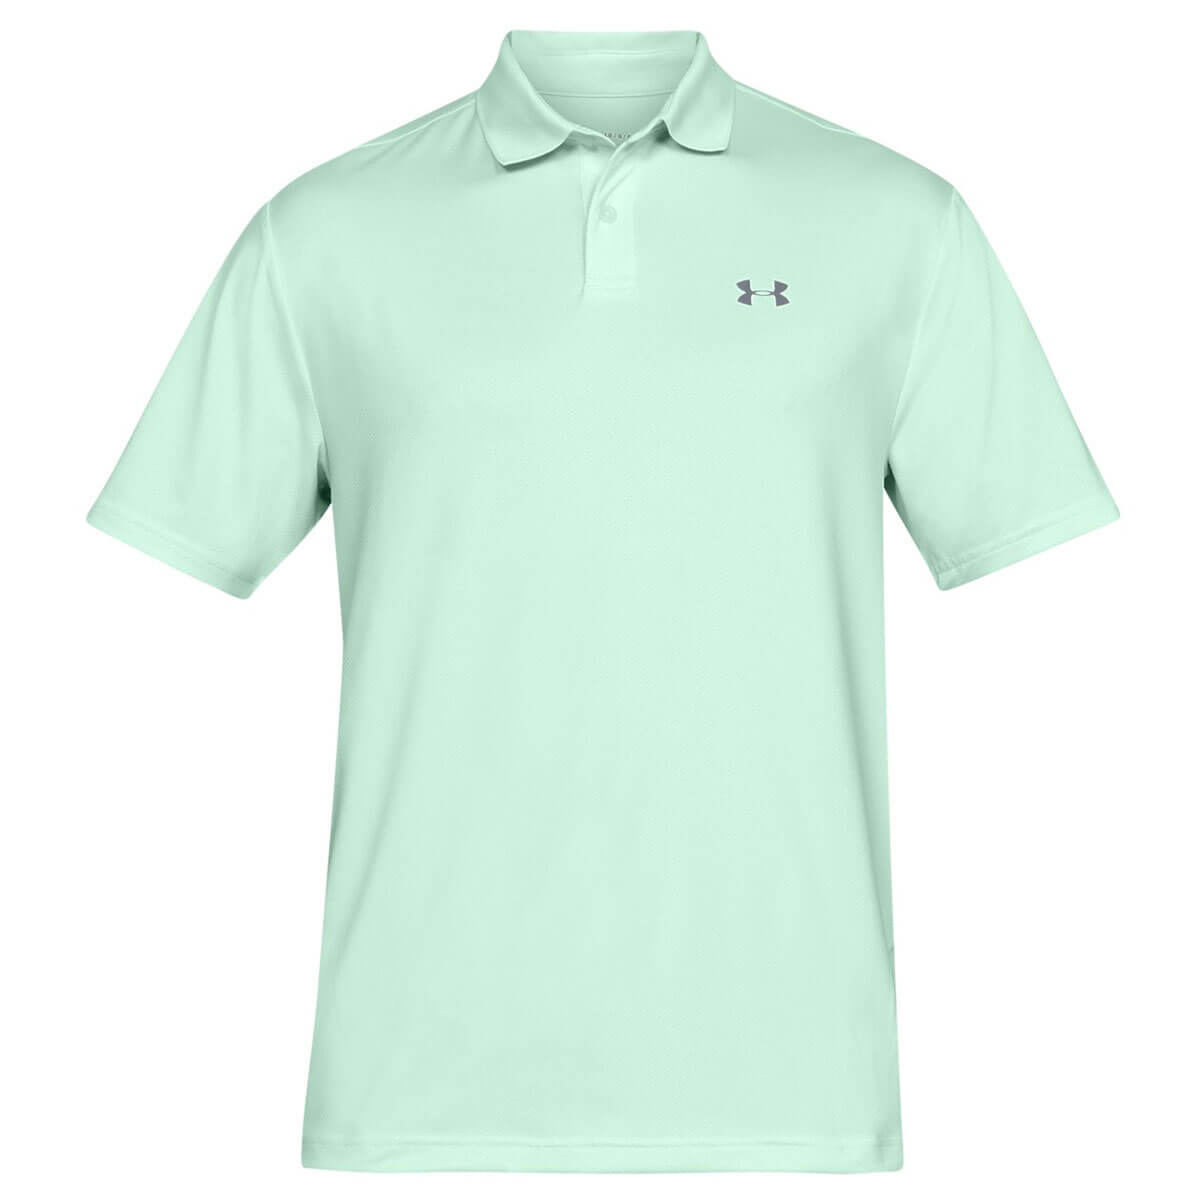 Under-Armour-Mens-2019-Performance-2-0-Stretch-Durable-Smooth-Golf-Polo-Shirt thumbnail 8